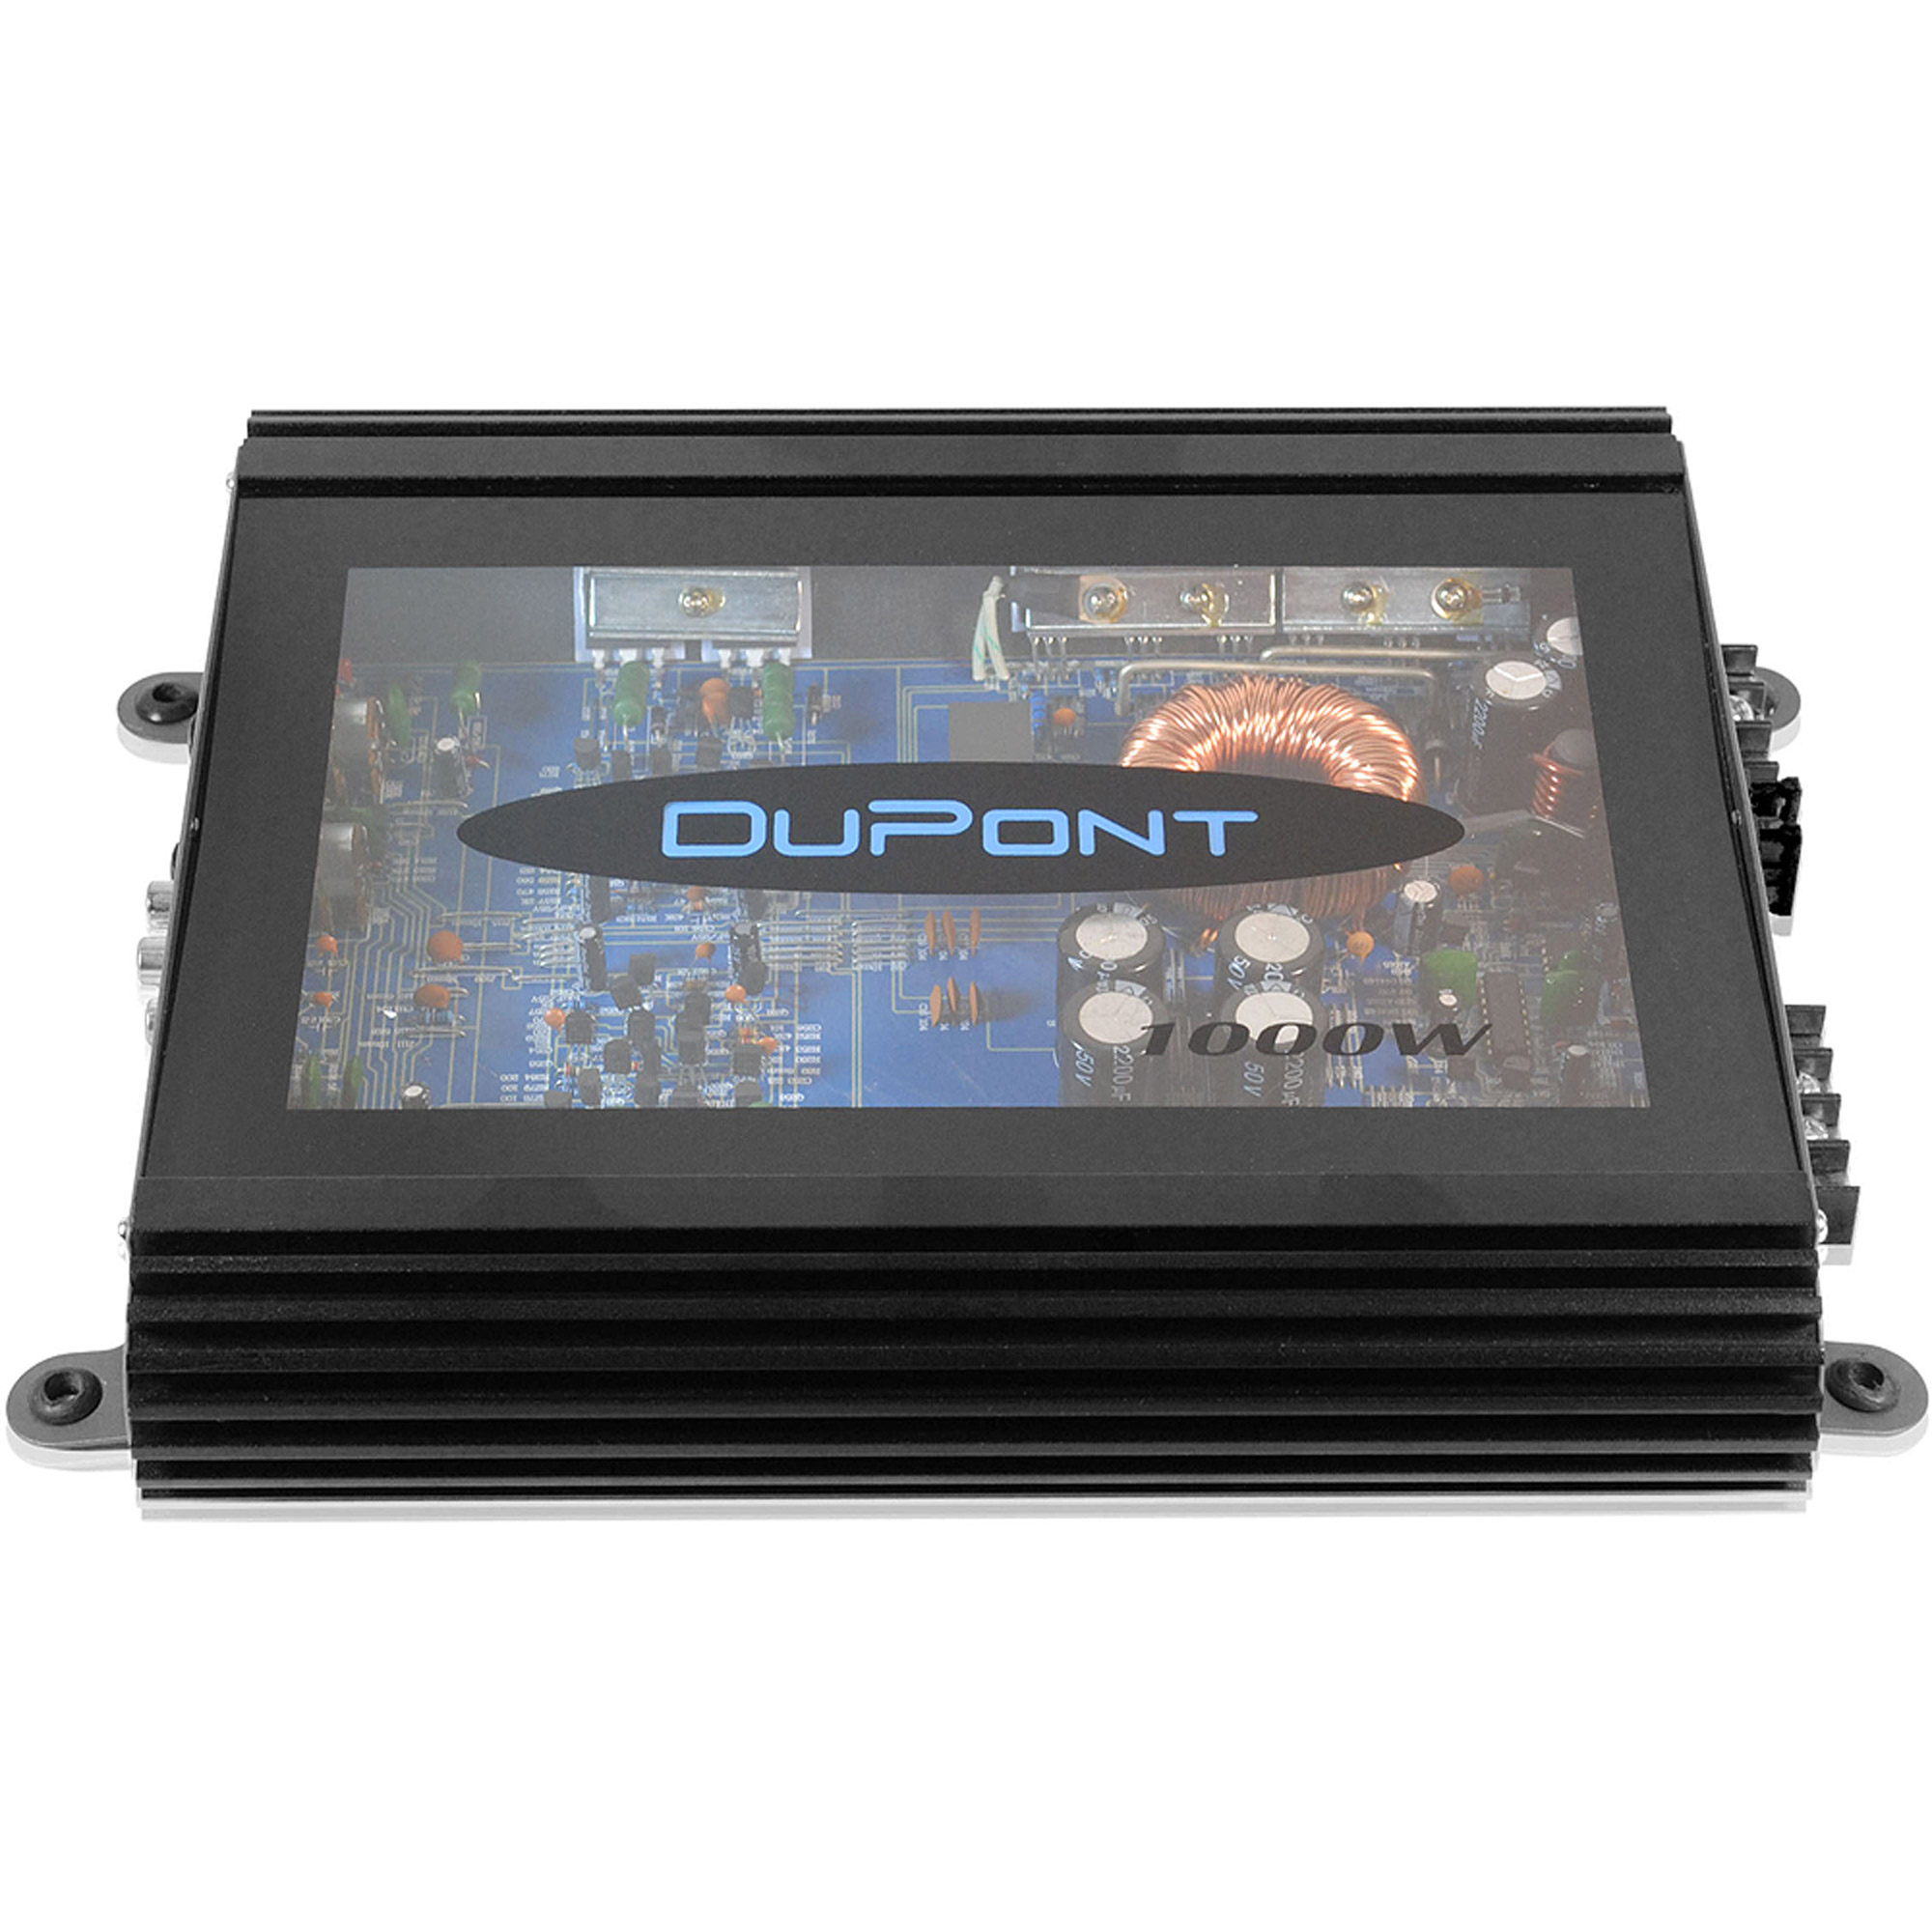 DuPont 1000W ZR1000.2 2-Channel High-Power MOSFET Amplifier